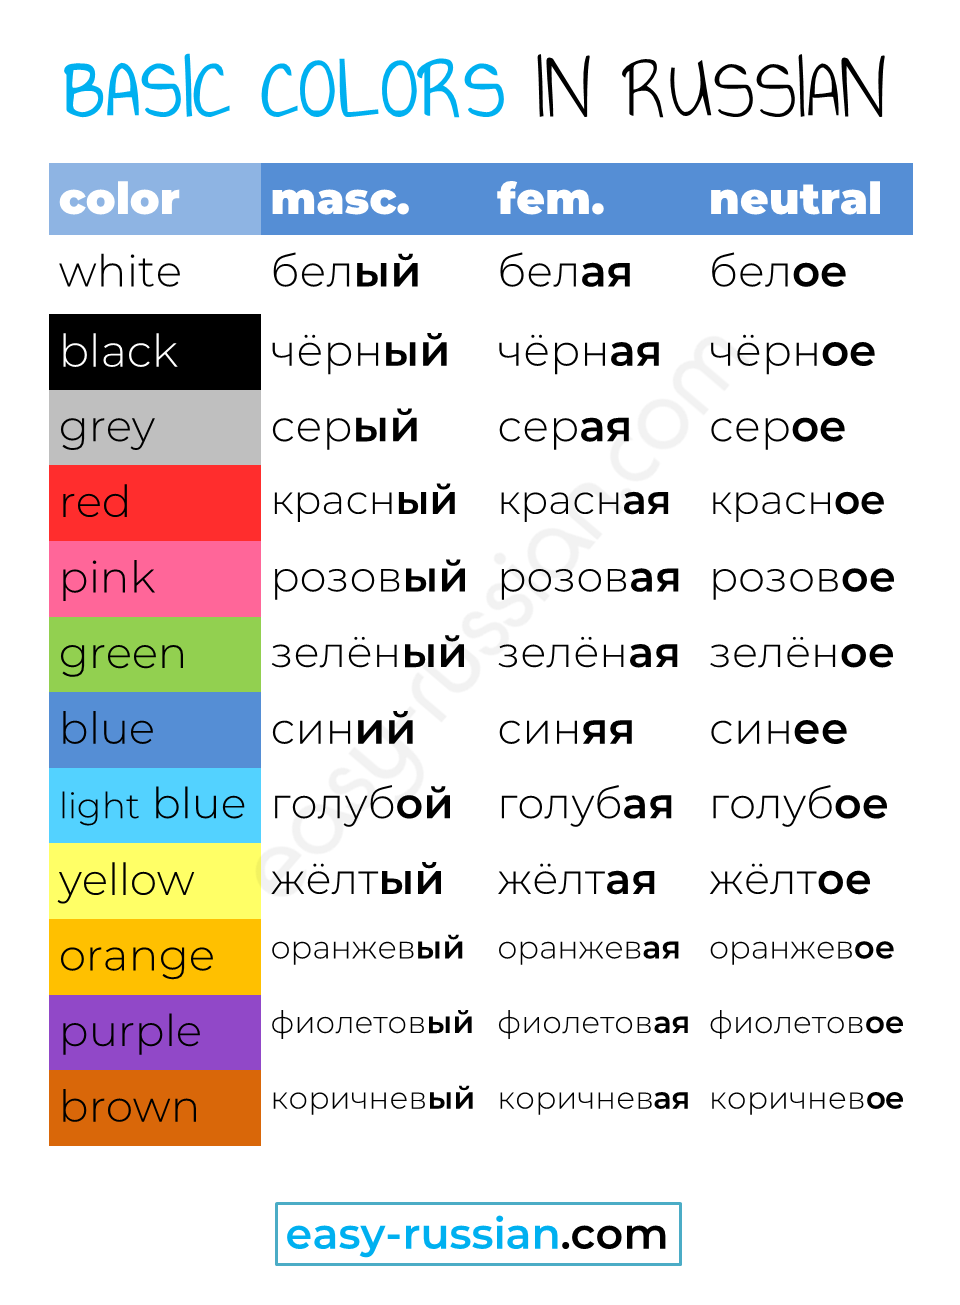 basic colors in Russian